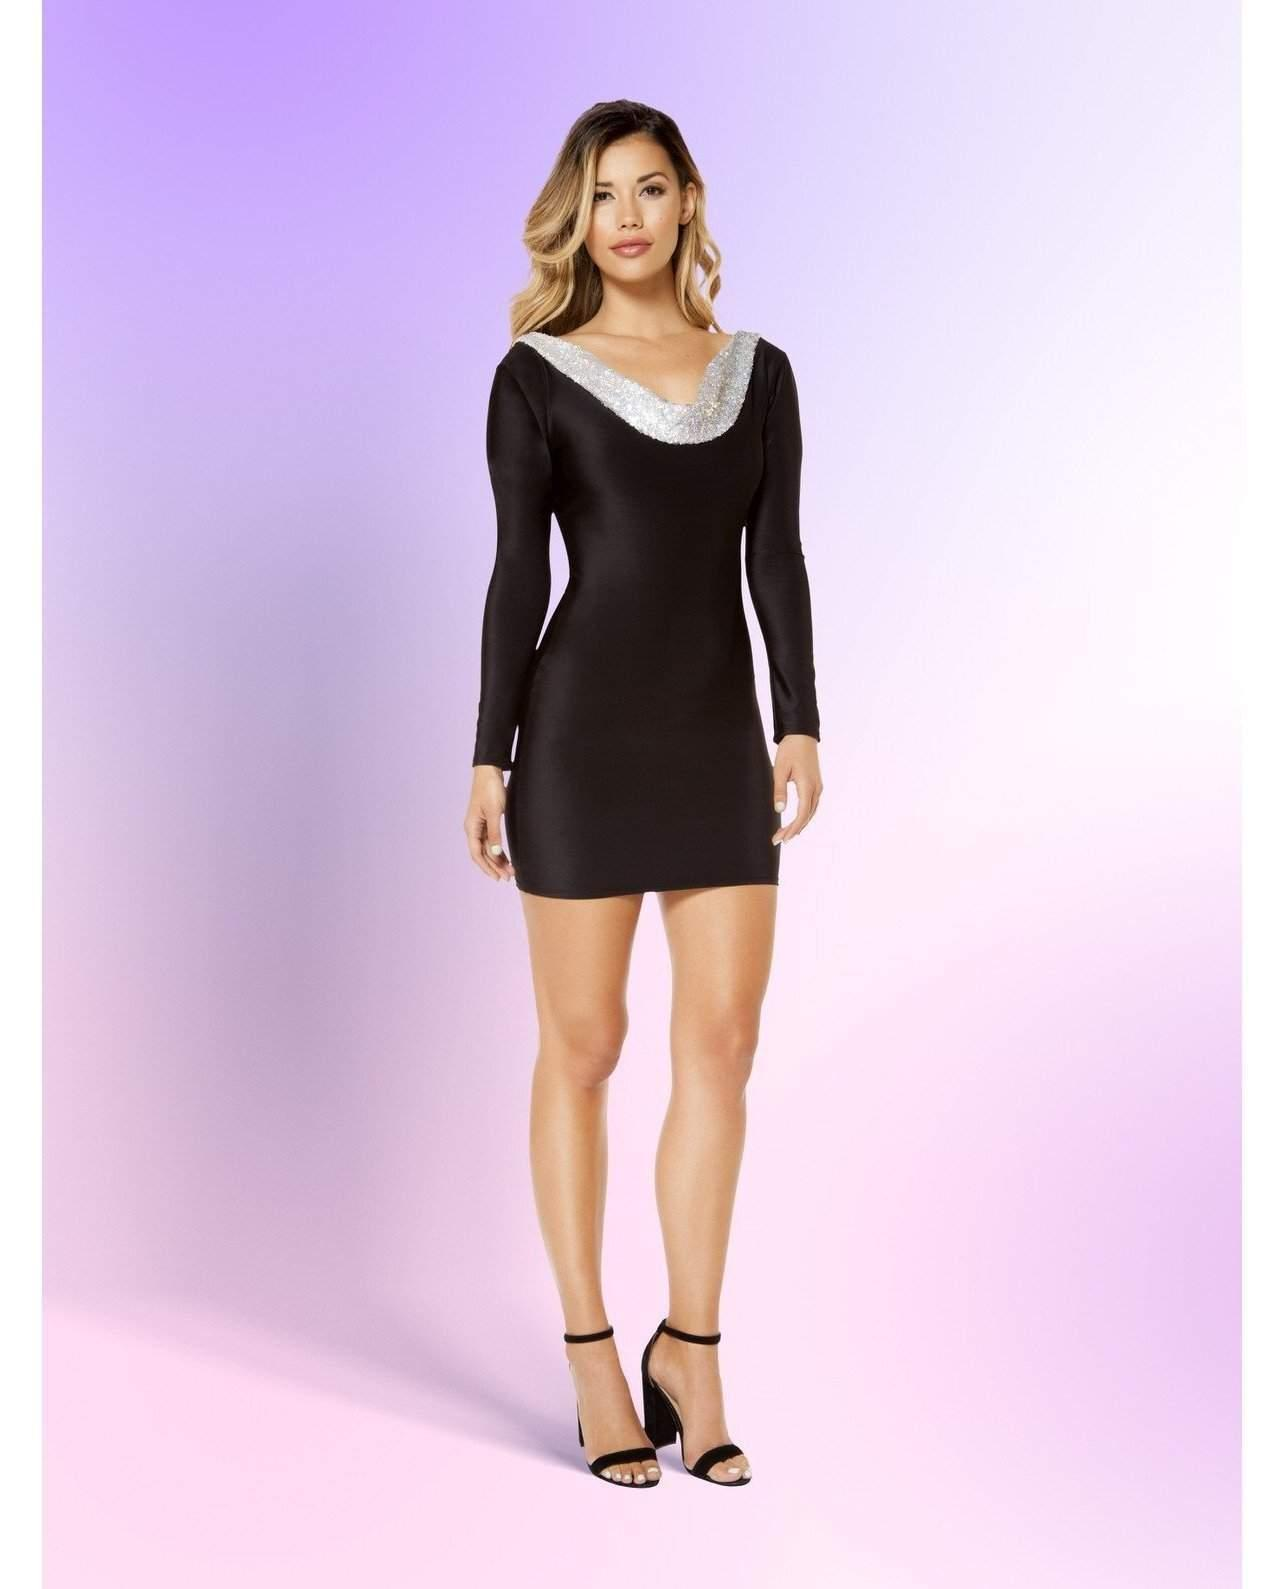 Black and Metallic Long Sleeve Mini Dress club wear Size SmallColor Black/GoldNakees